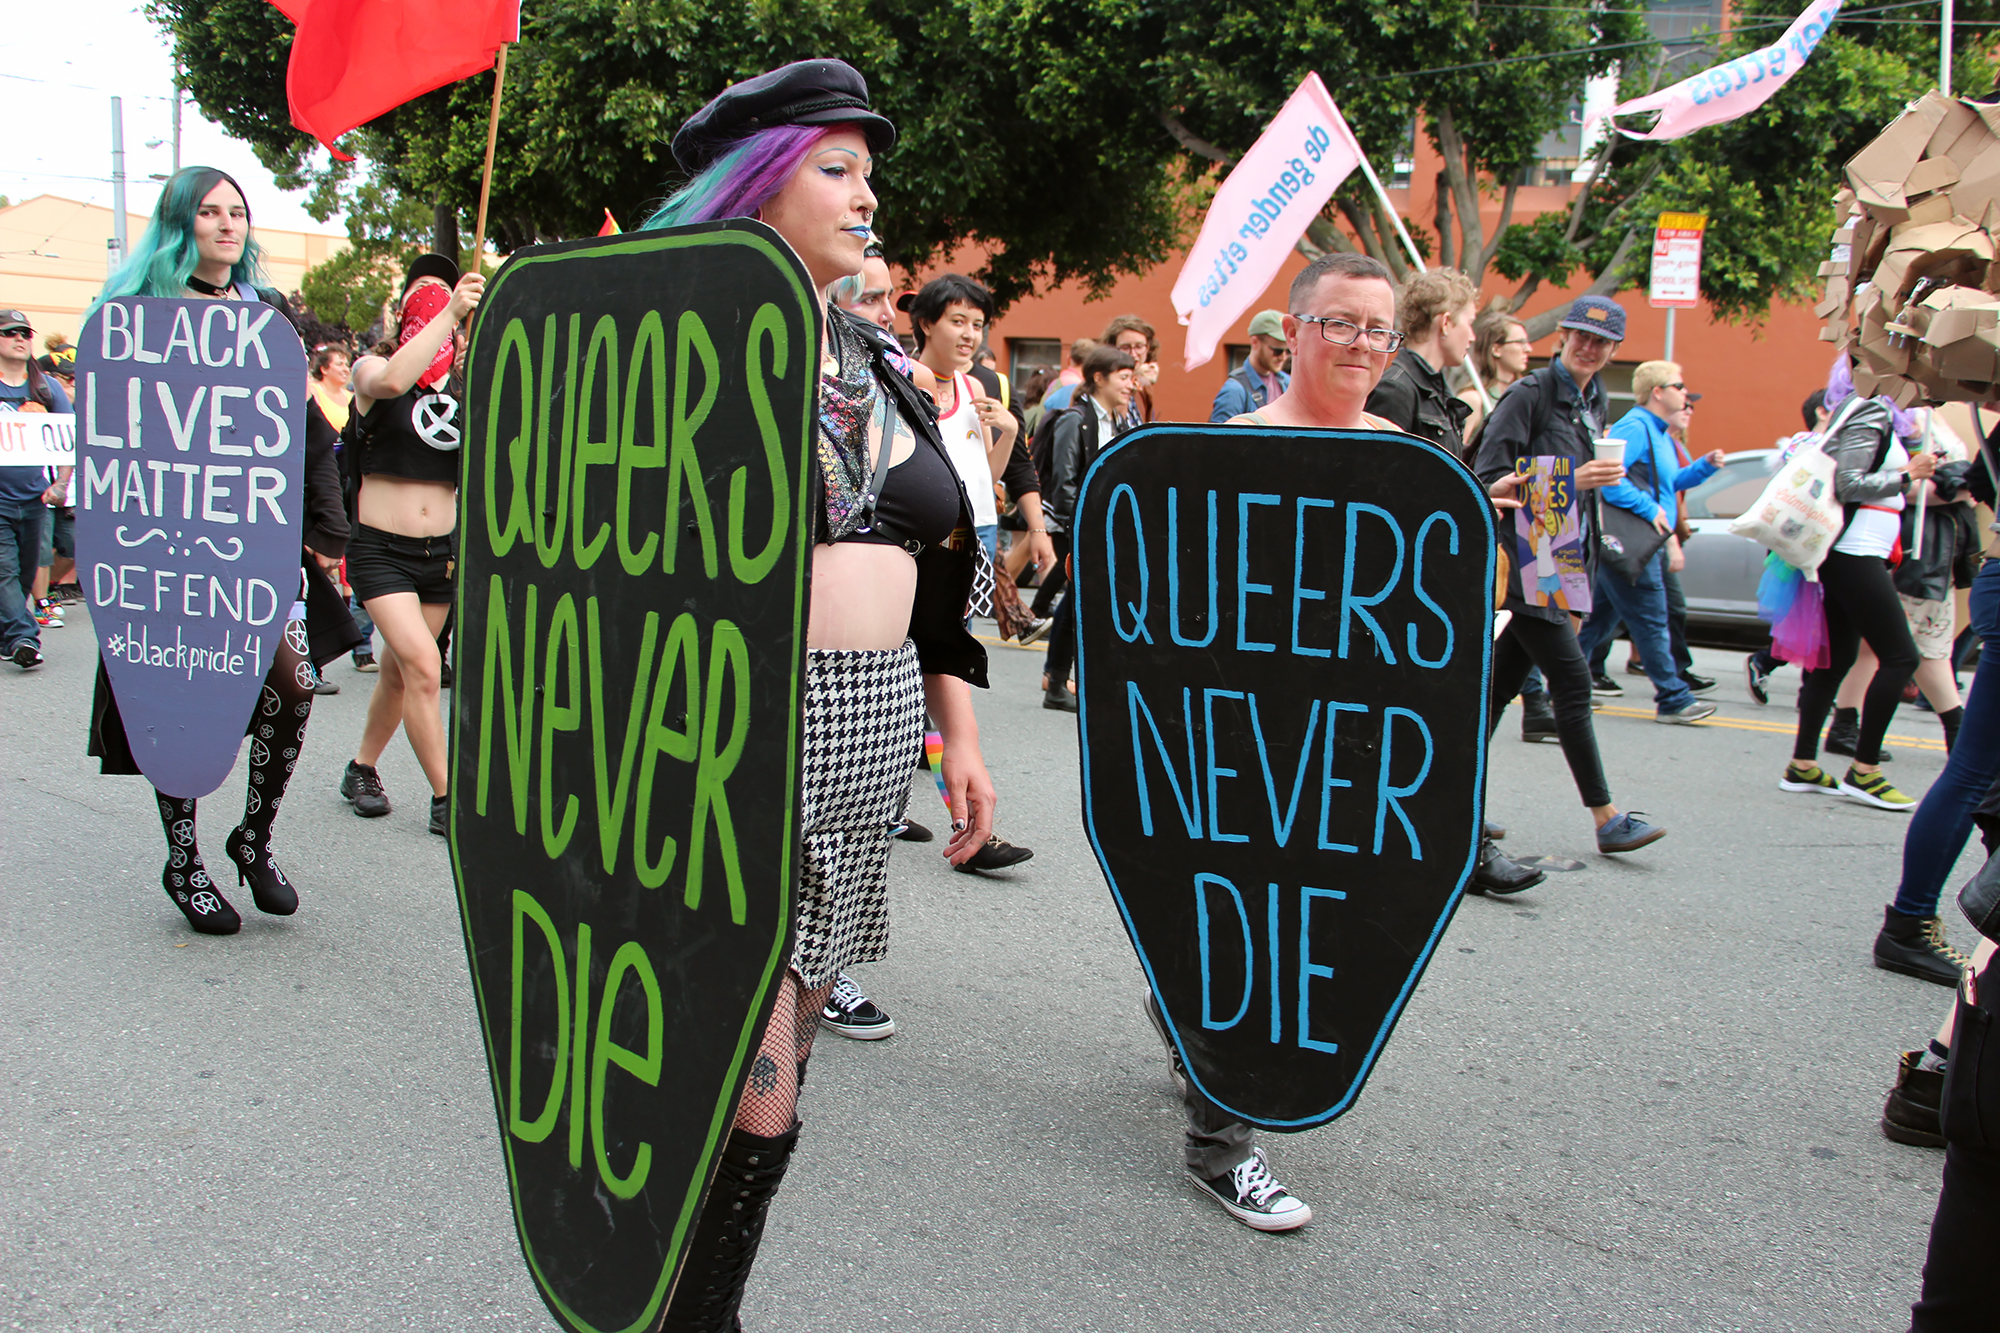 Queers Never Die